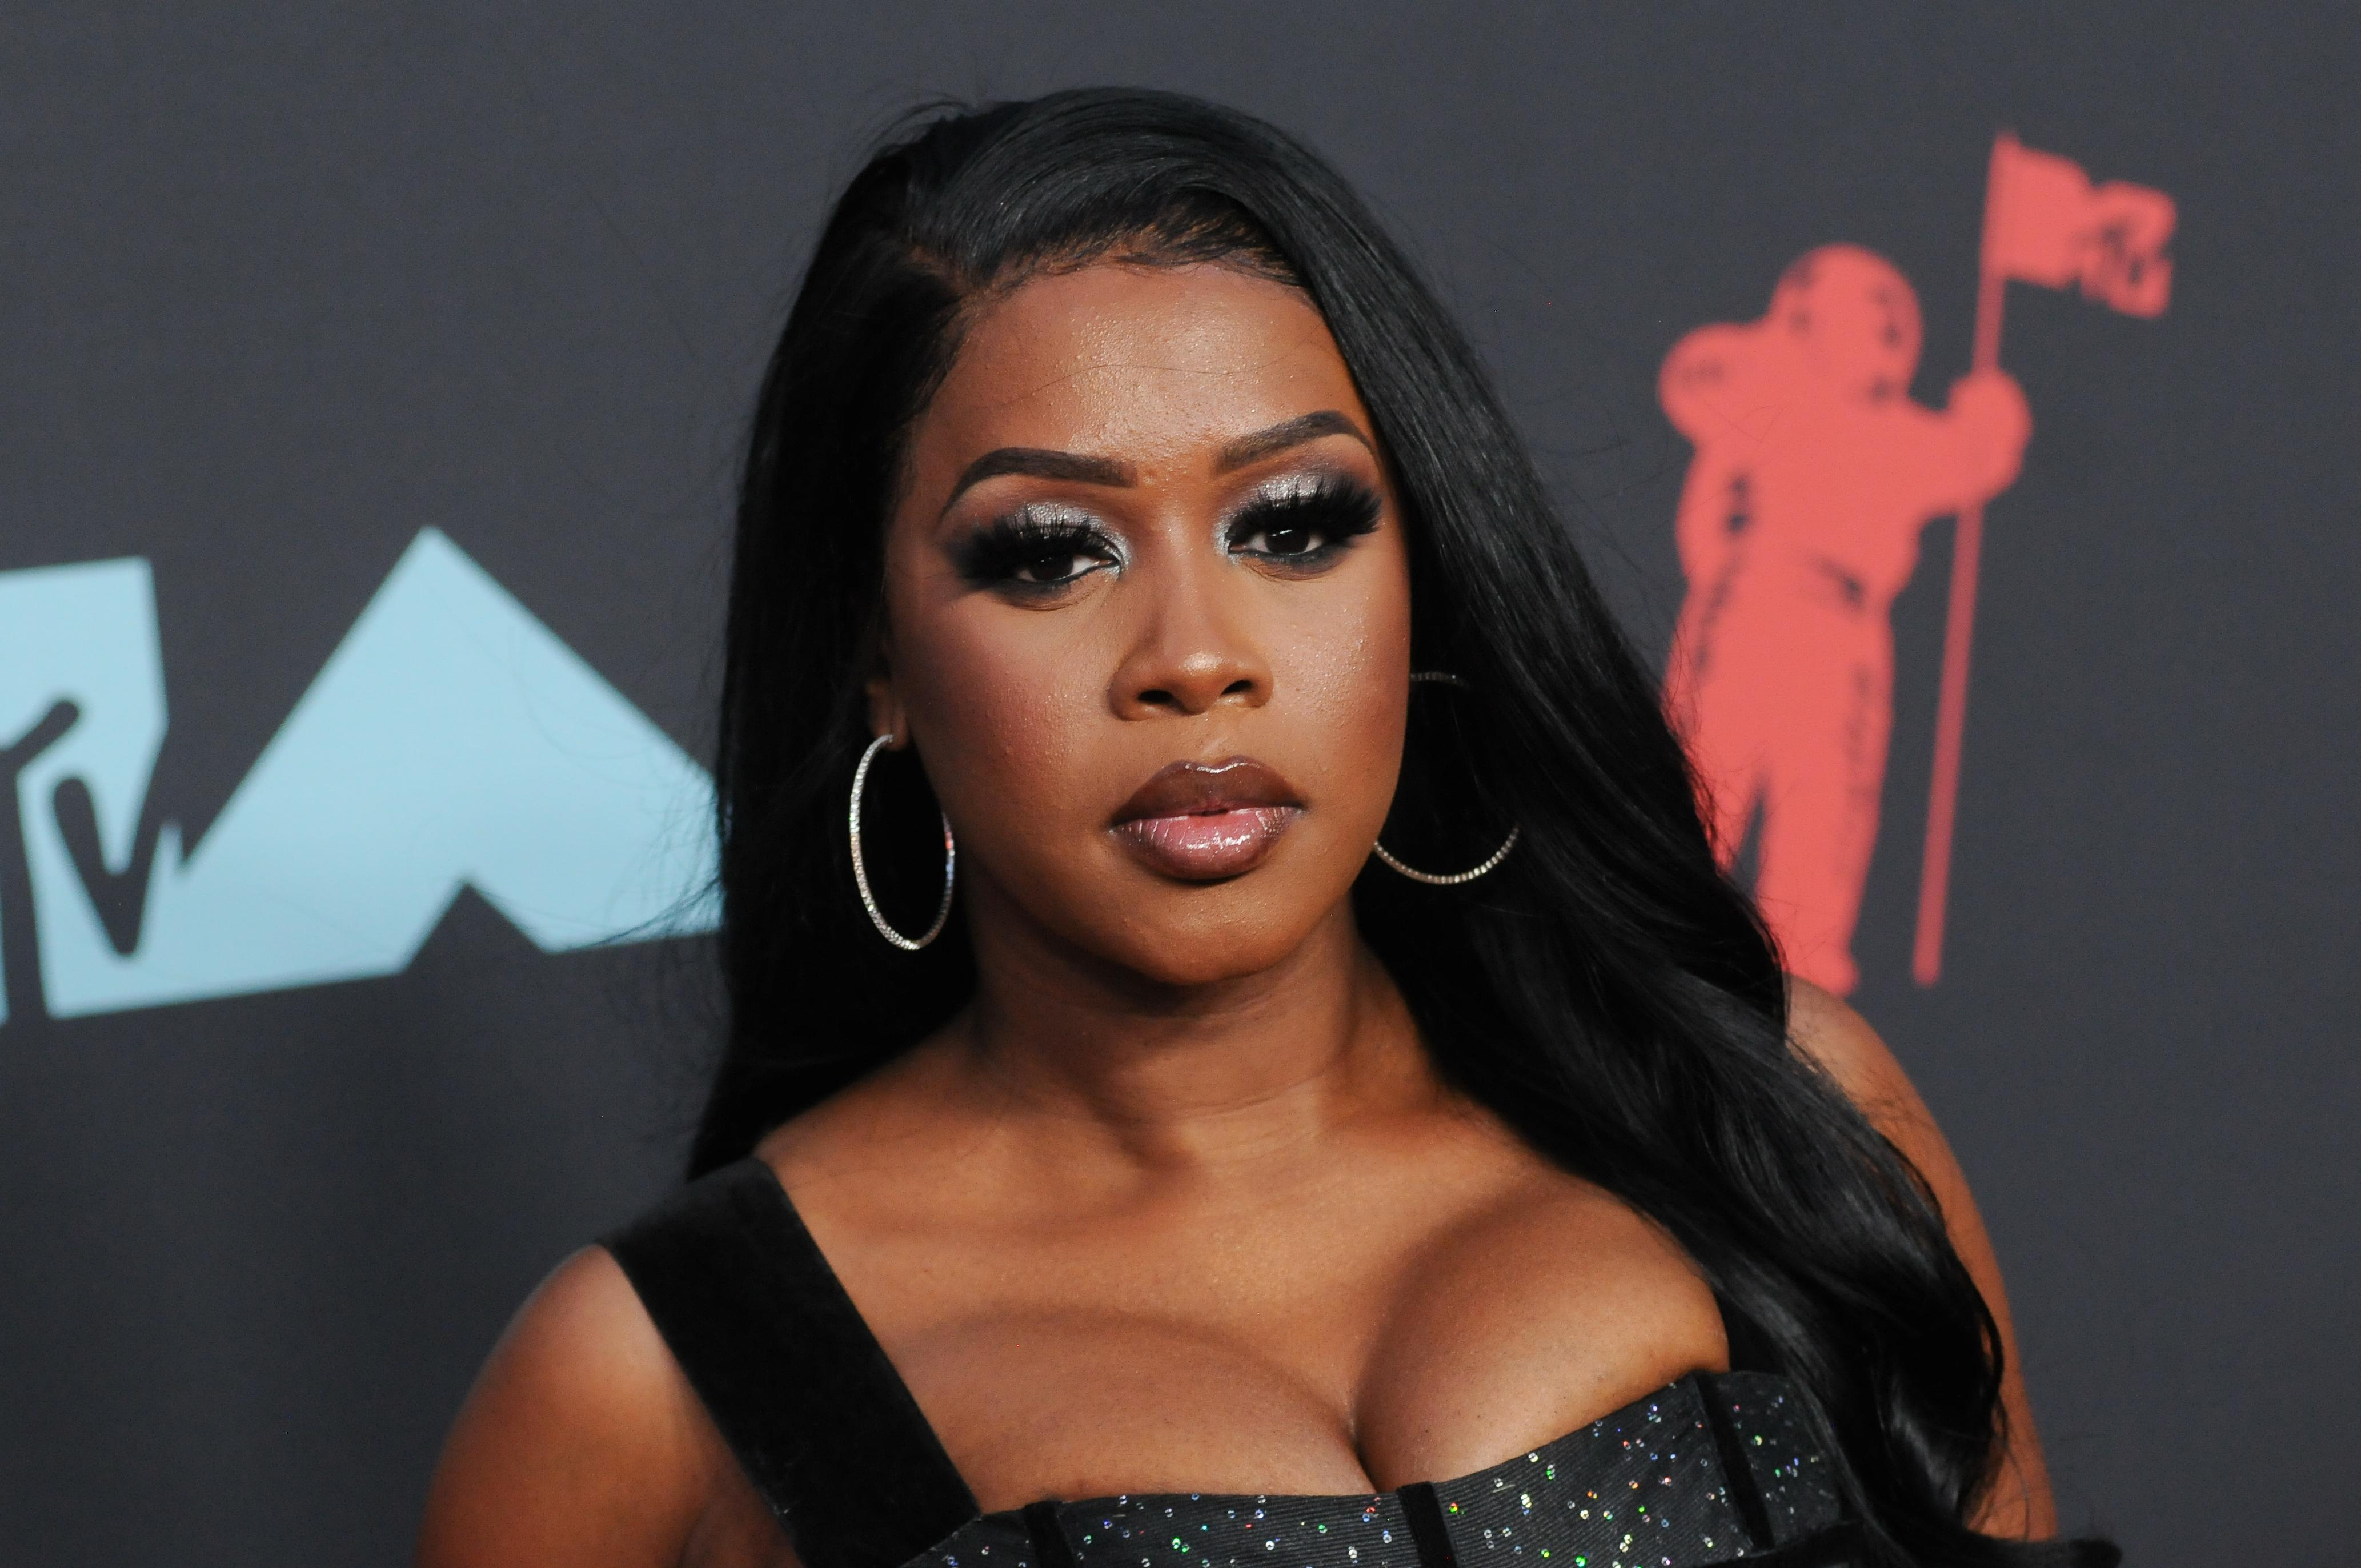 Rapper Remy Ma slammed for saying rape survivors who seek compensation are prostitutes